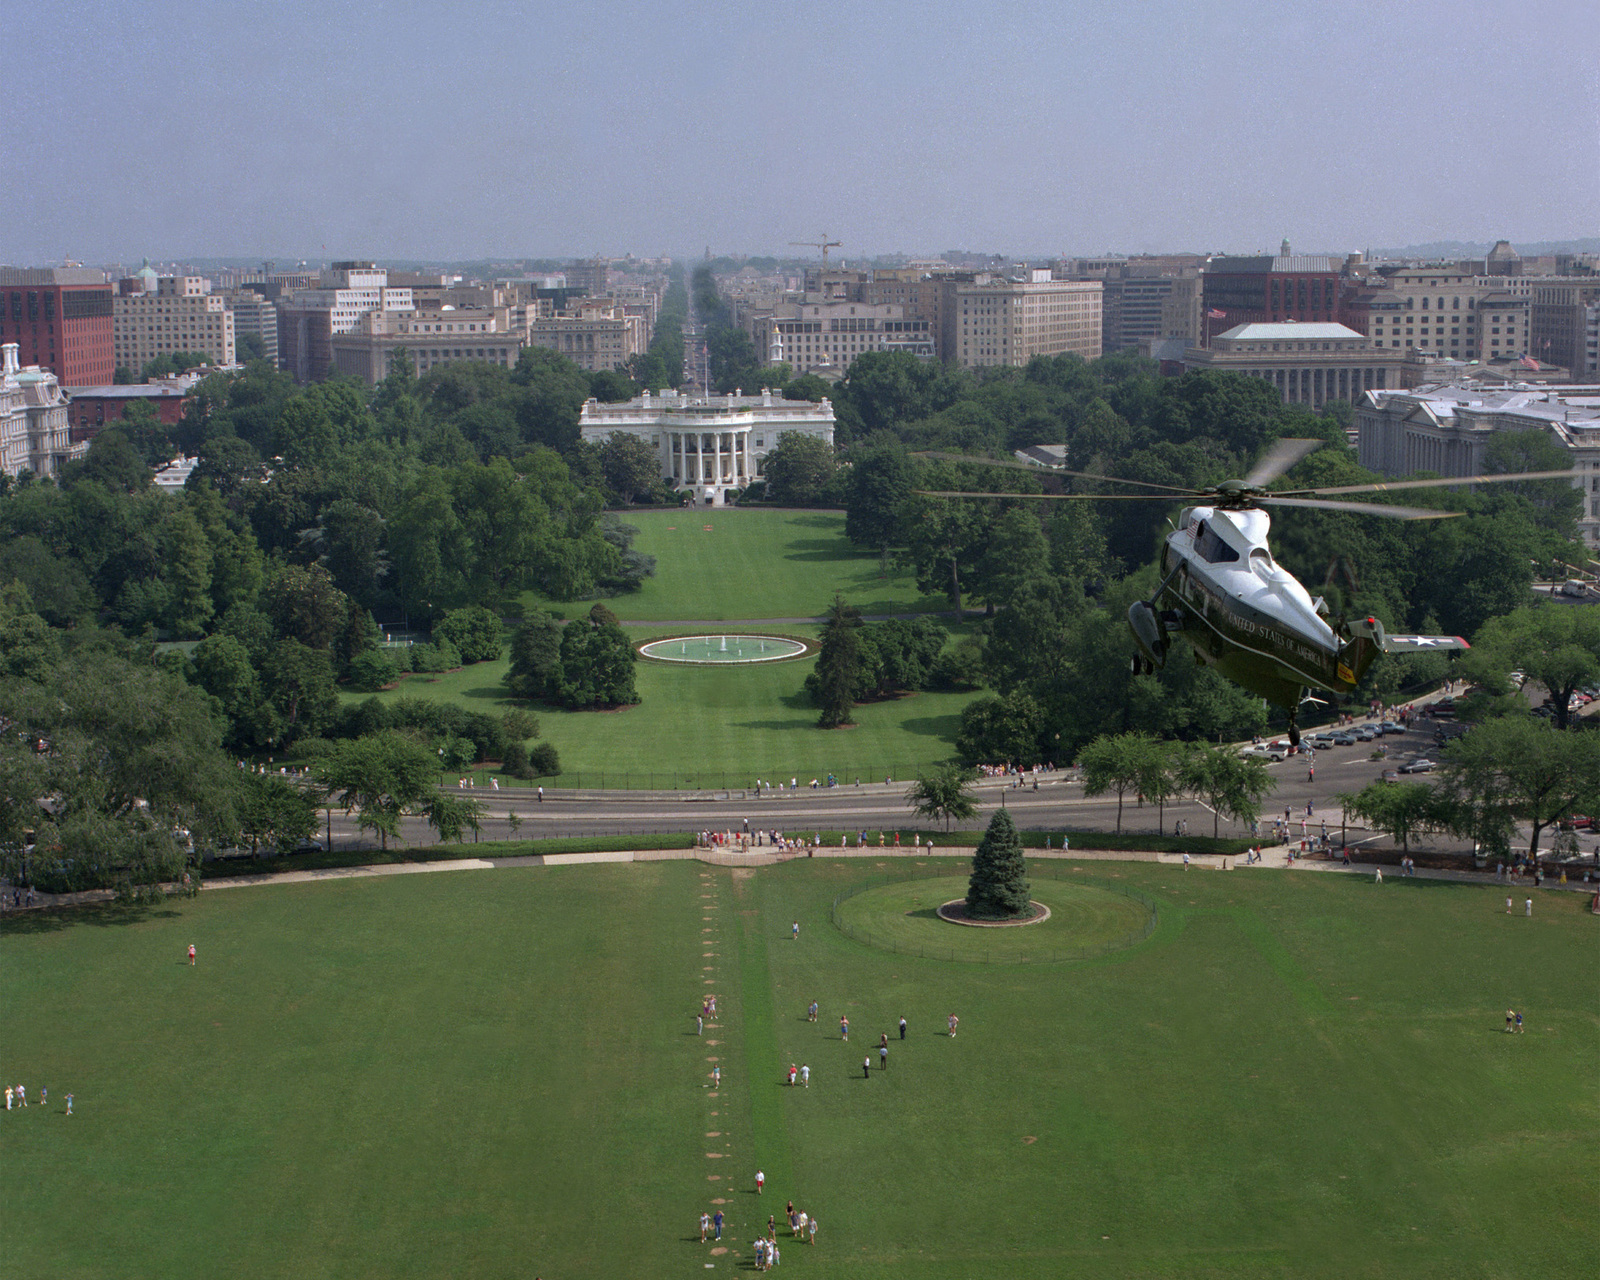 A Marine Helicopter Squadron 1 (HMX-1) VH-3D Sea King helicopter approaches the south lawn of the White House